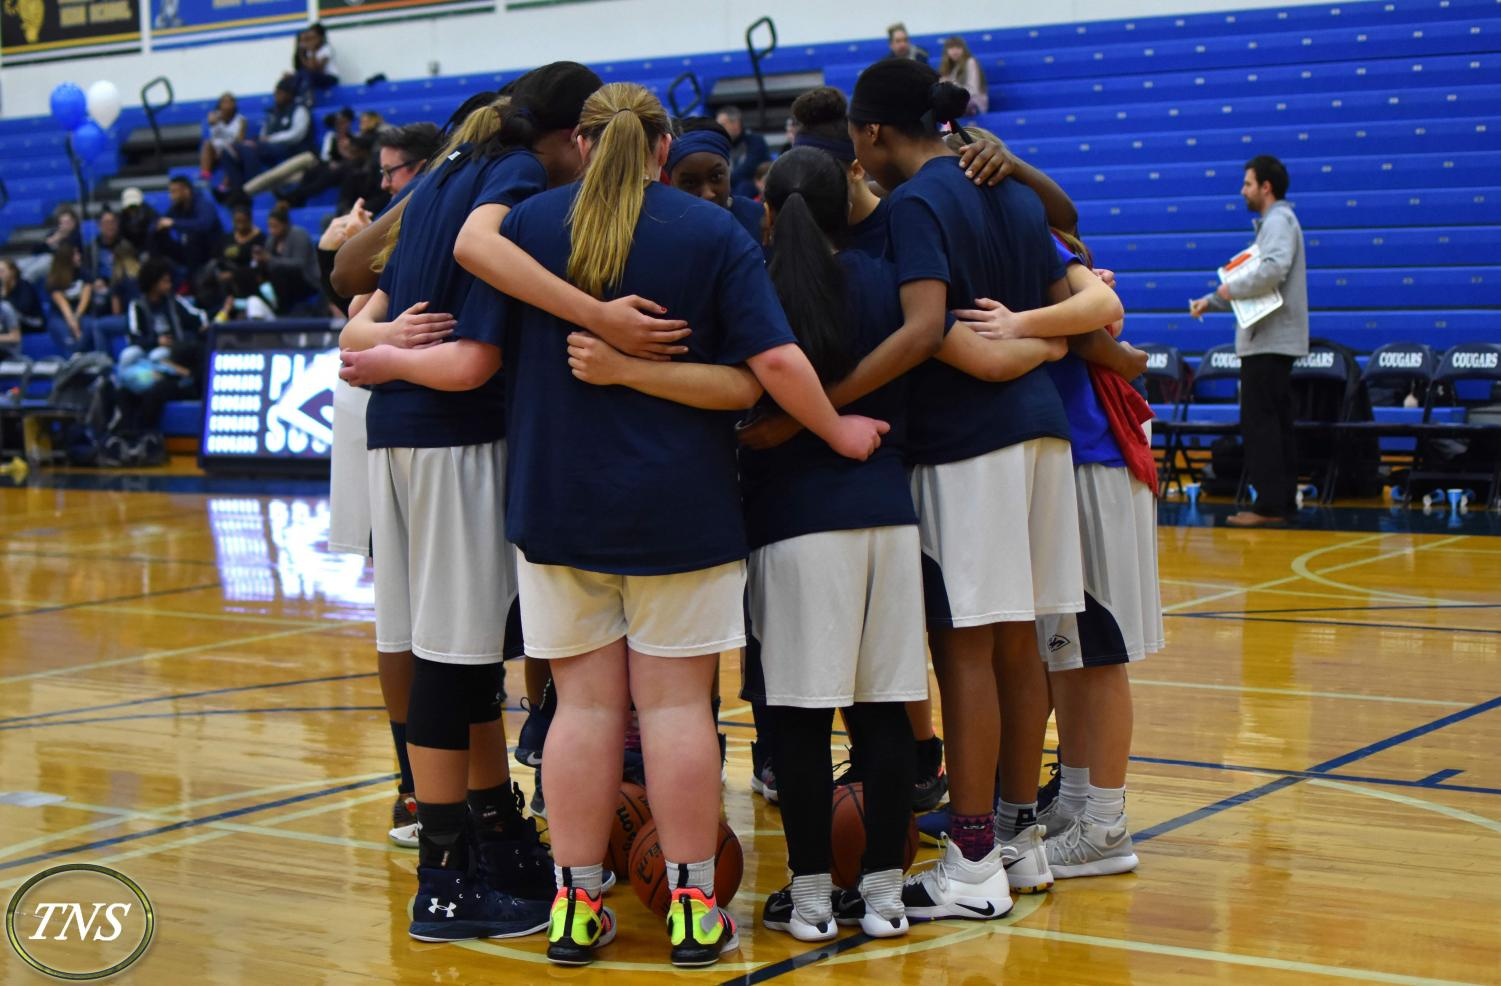 These photos feature last year's team huddle before the game against East.